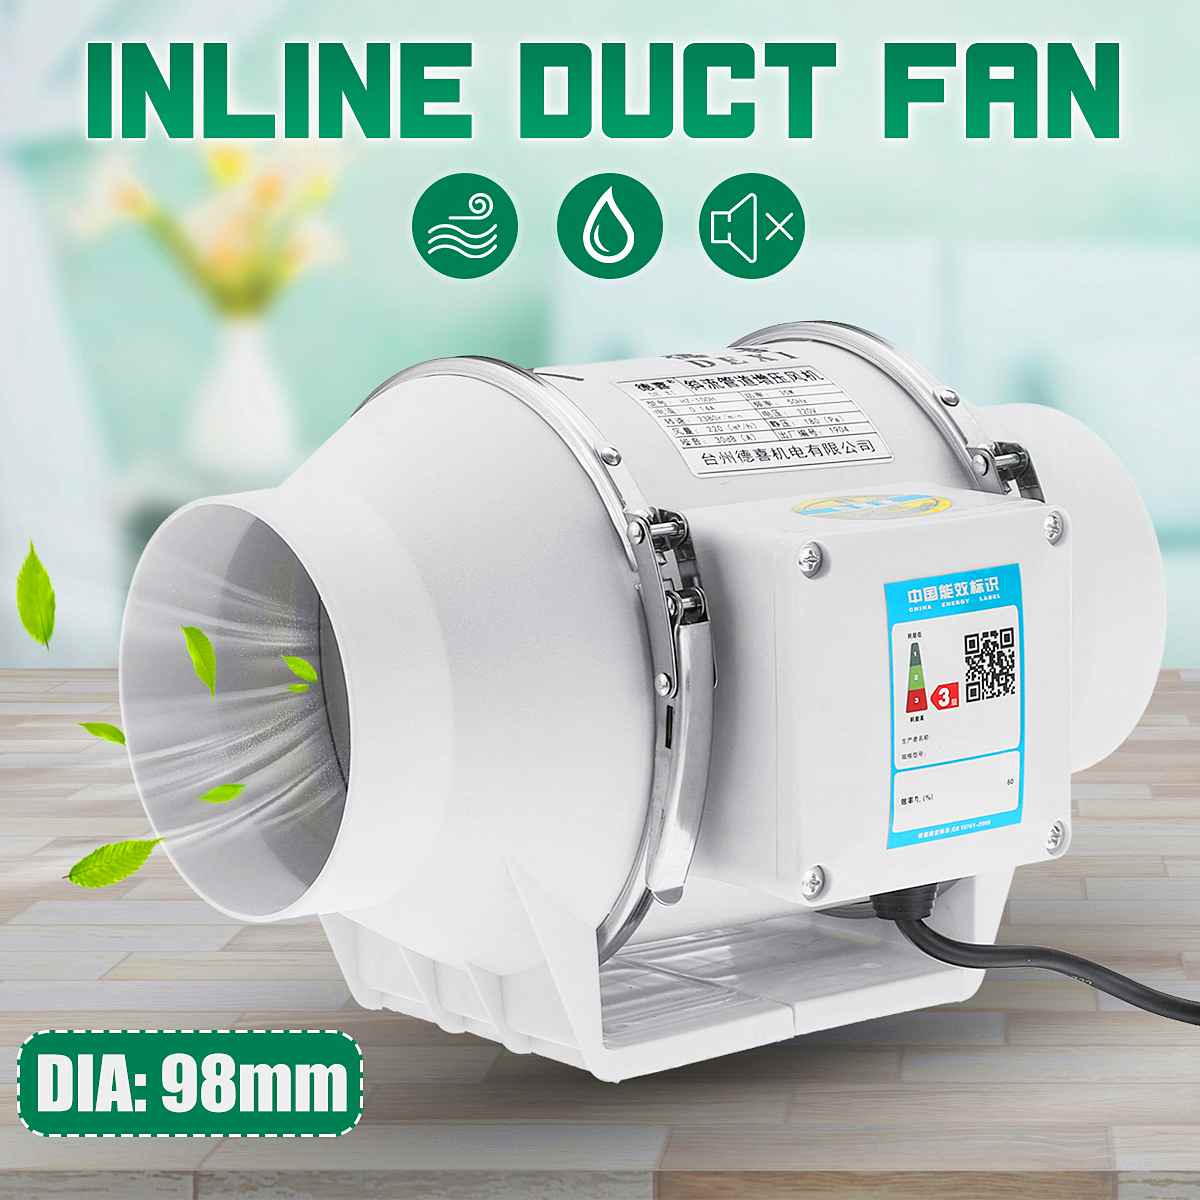 Mixed Flow Inline Duct Booster Fan Turbines Air Blower Hydroponic Air Ventilation System Bathroom Toilet Kitchen Extractor Fan